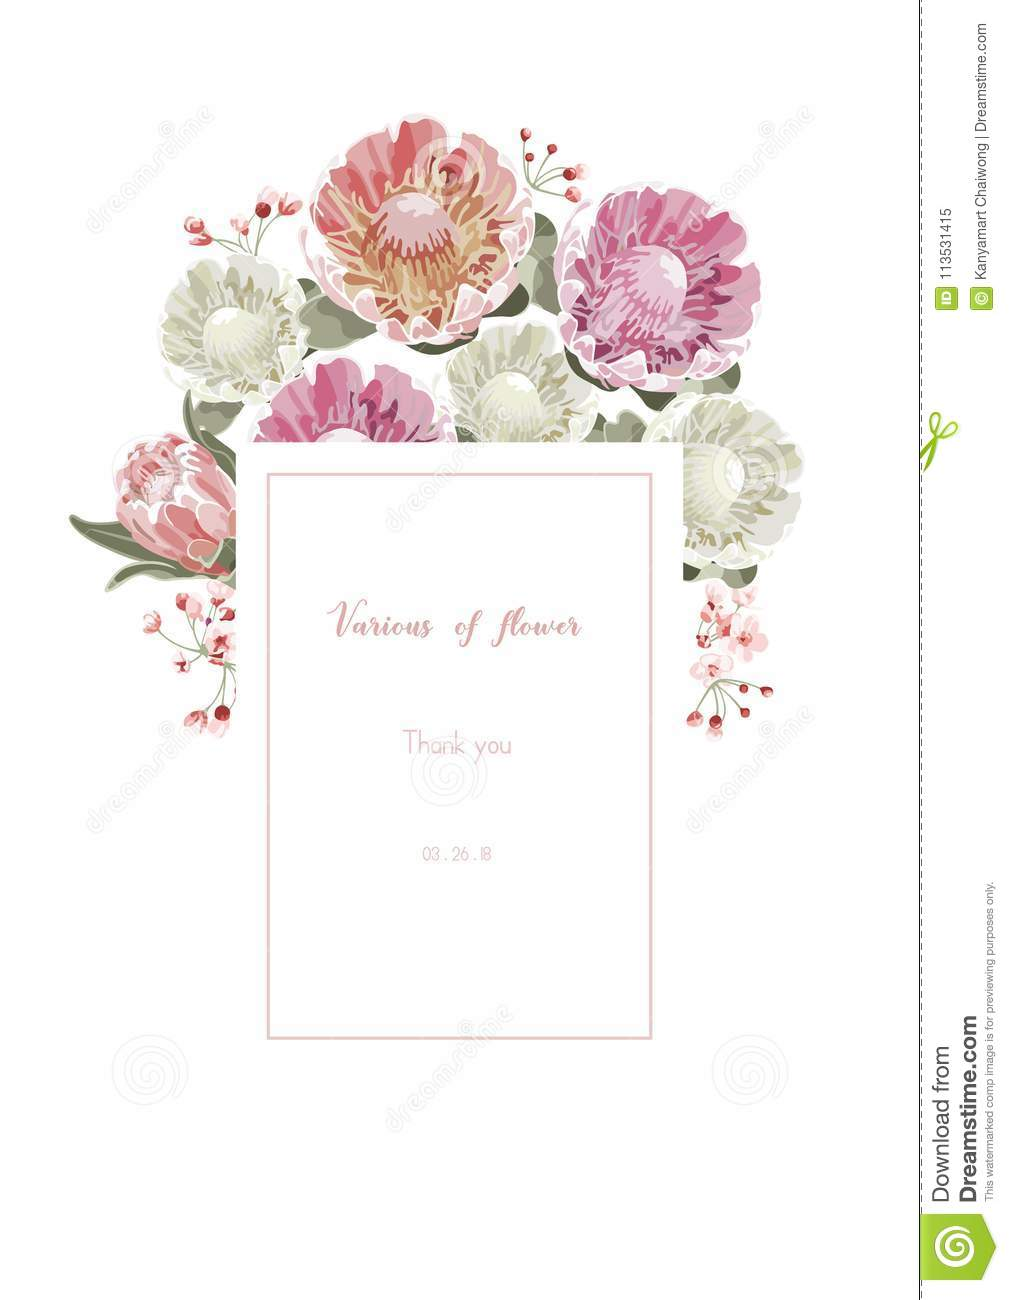 Vintage and luxurious floral vector greeting card with flowers i vintage and luxurious floral vector greeting card with flowers i izmirmasajfo